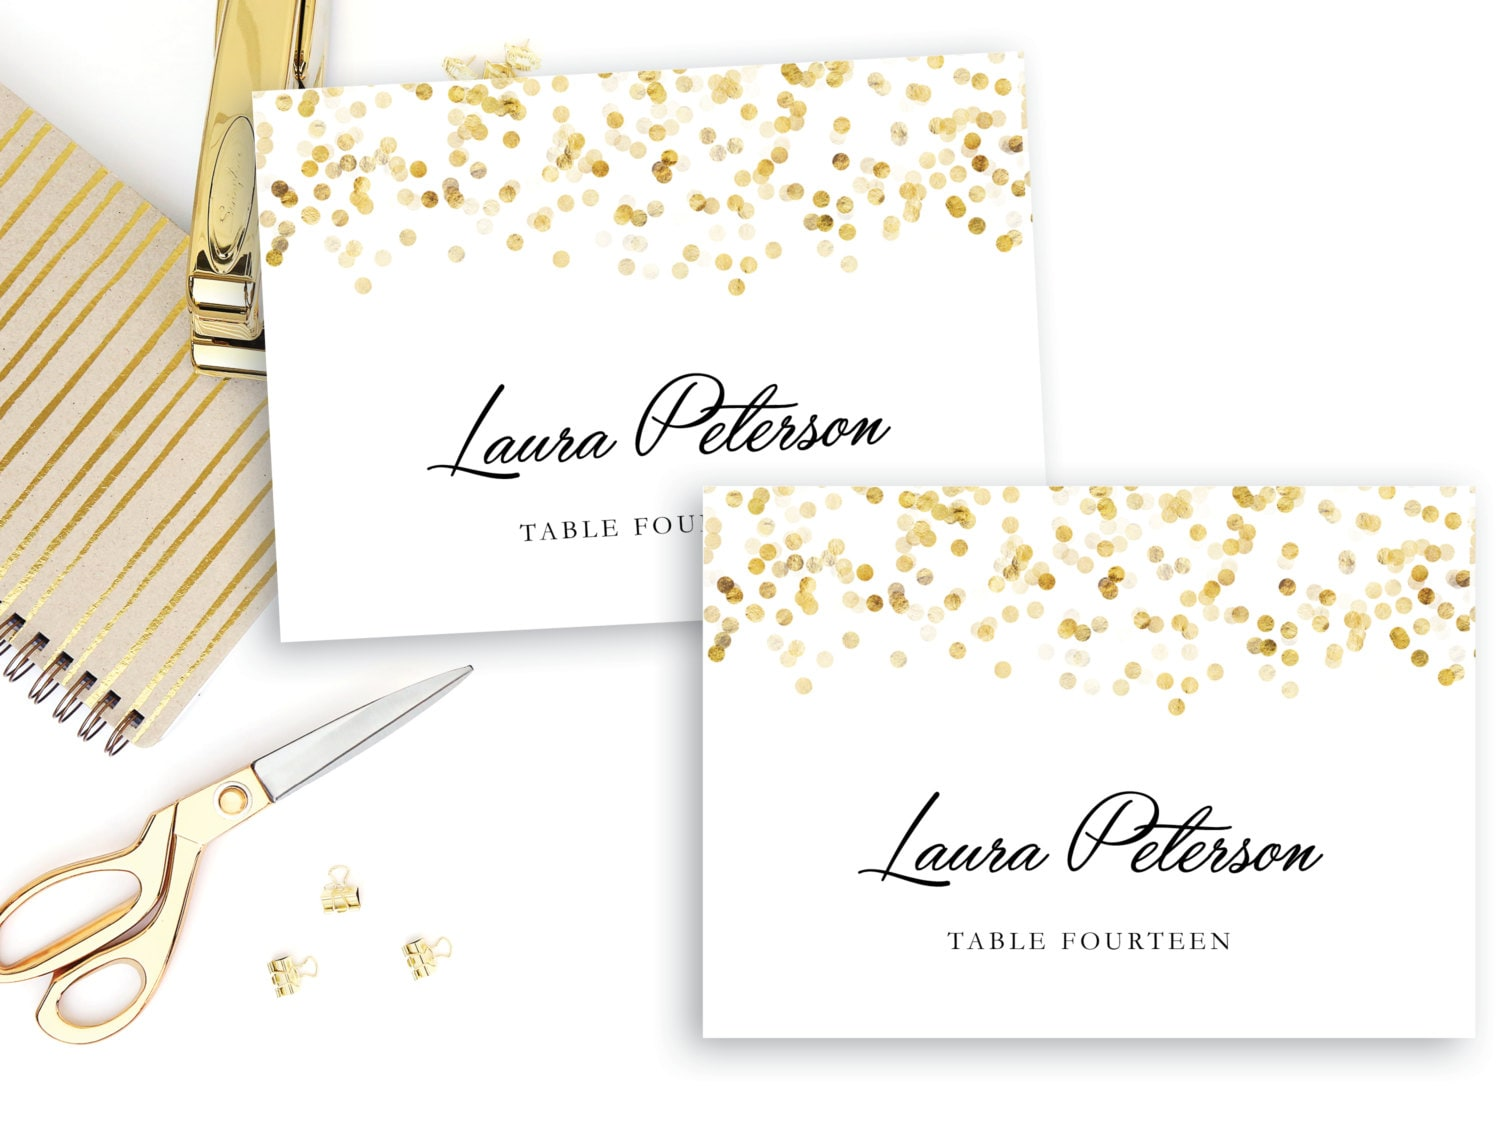 Revered image pertaining to gold printable place cards